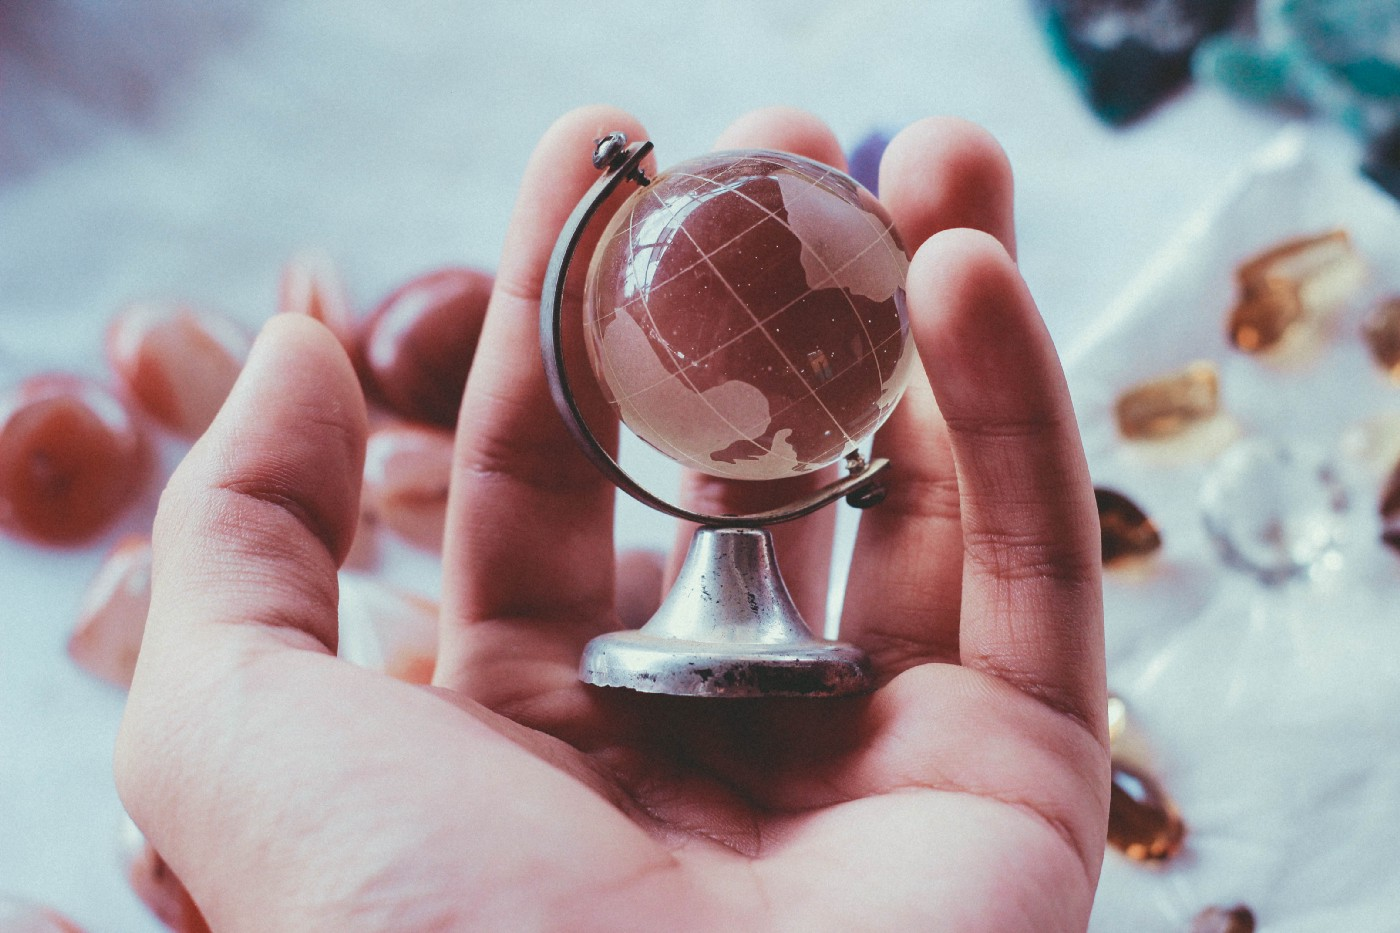 person holding globe paperweight in their hand